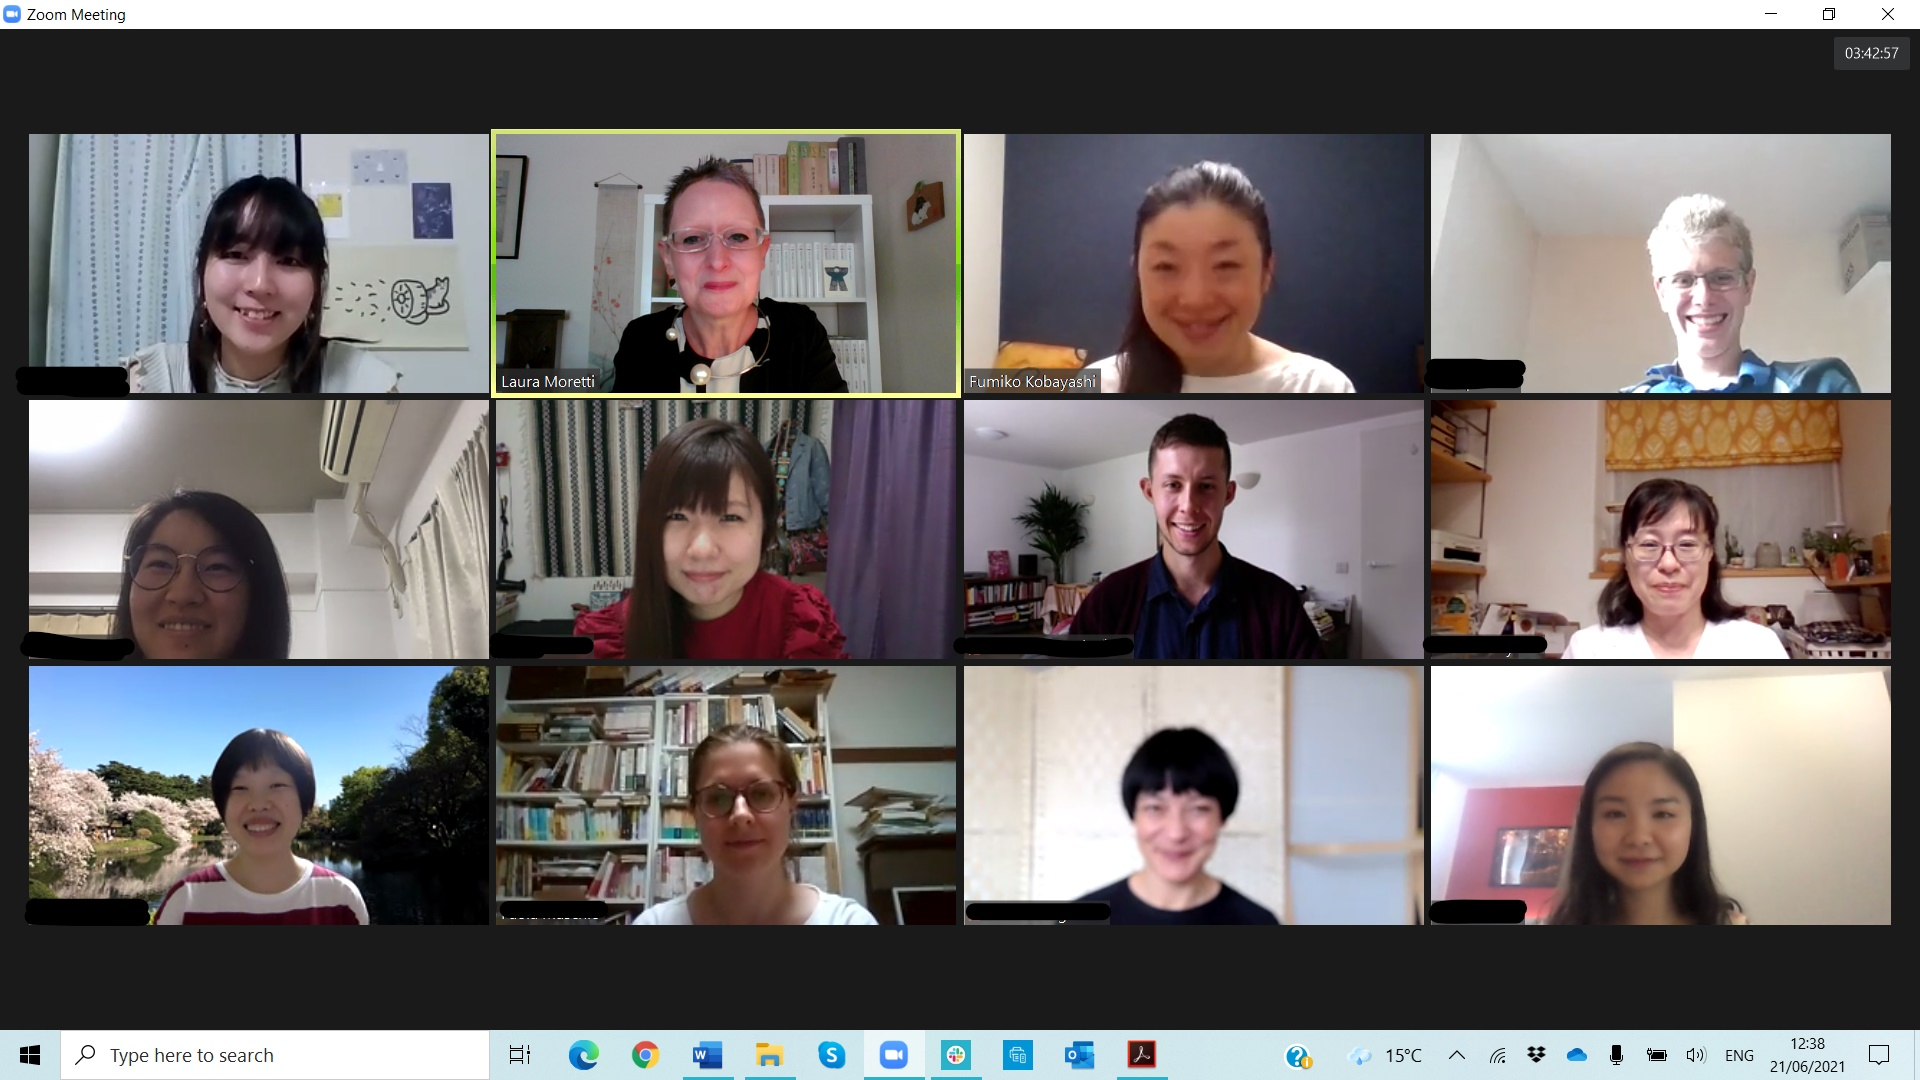 Image shows screenshot of Zoom meeting with 3 rows of participants, smiling